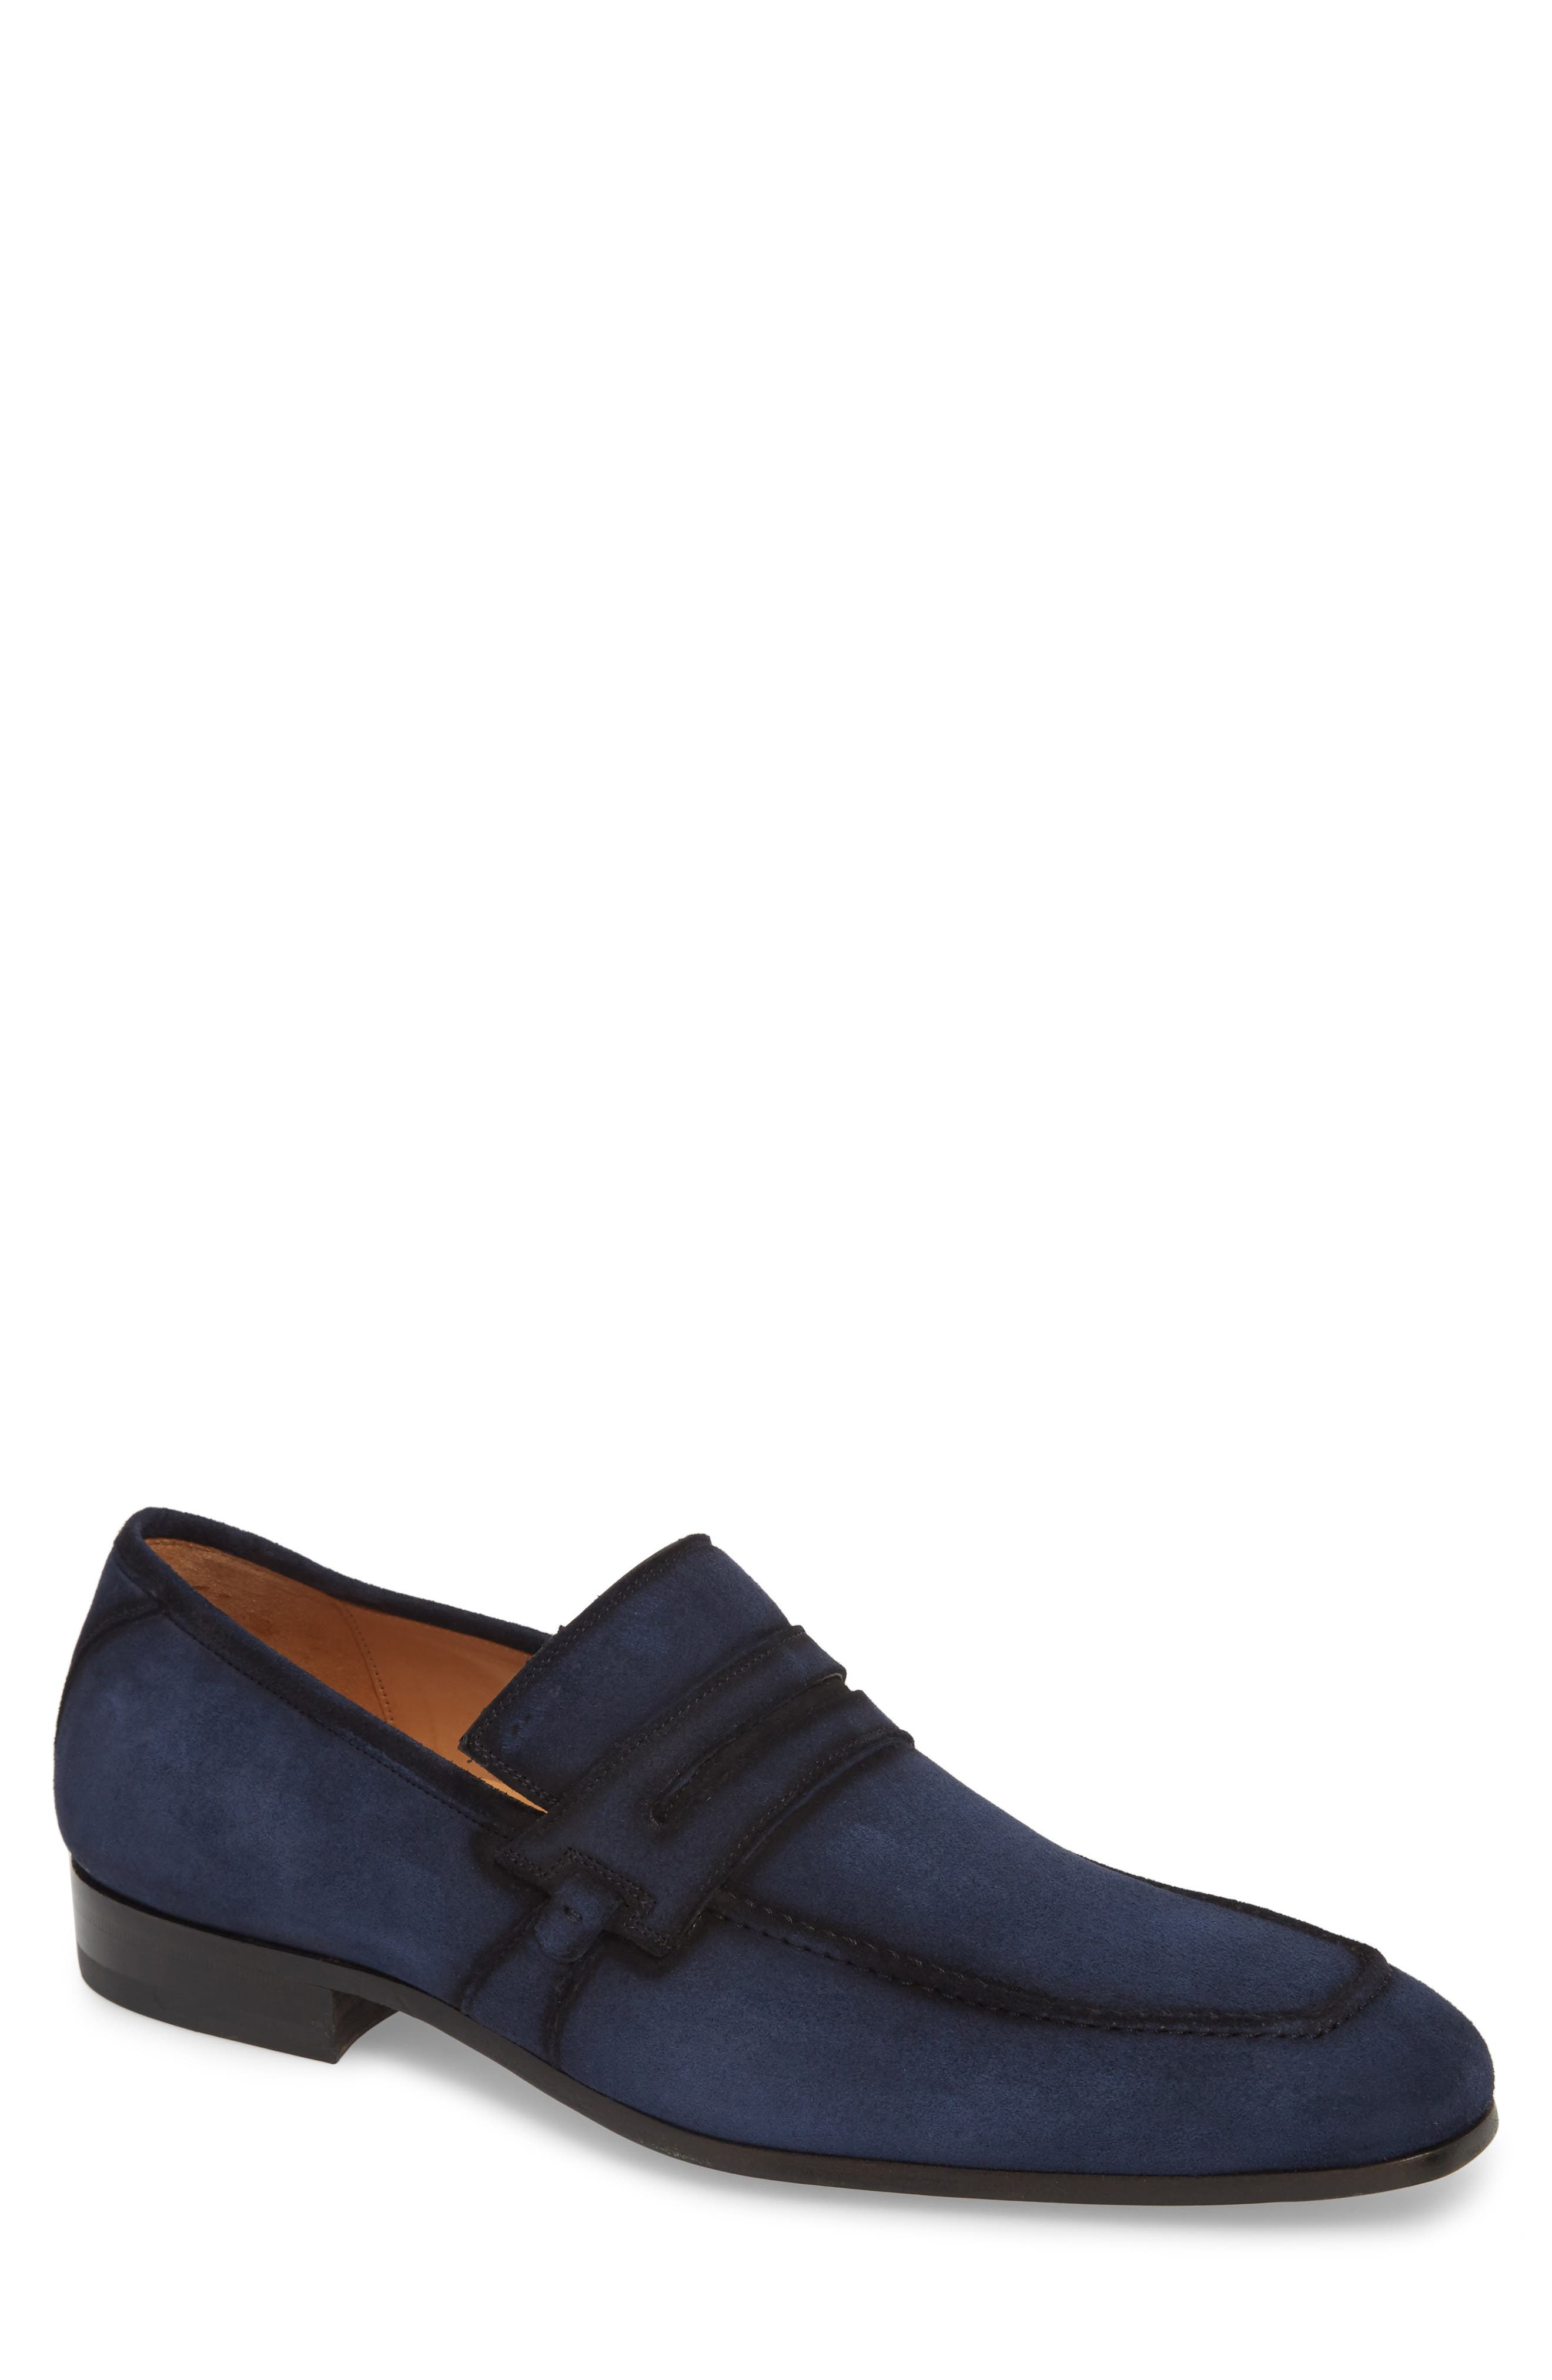 MEZLAN Ulpio Apron Toe Penny Loafer in Blue